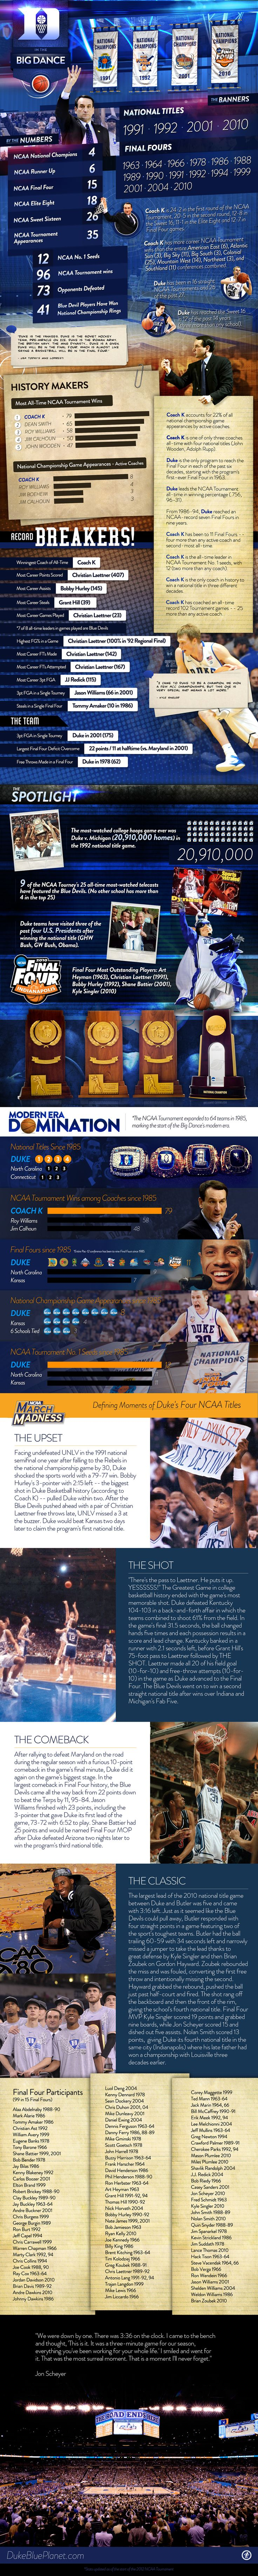 Duke as an infographic